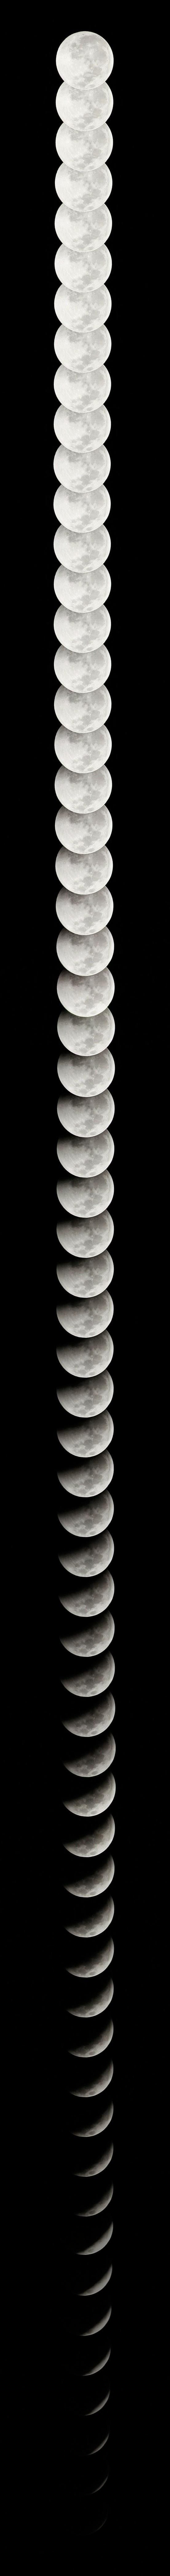 Oooo, portentous! / Lunar Eclipse 2010, via Daily Dose of Imagery